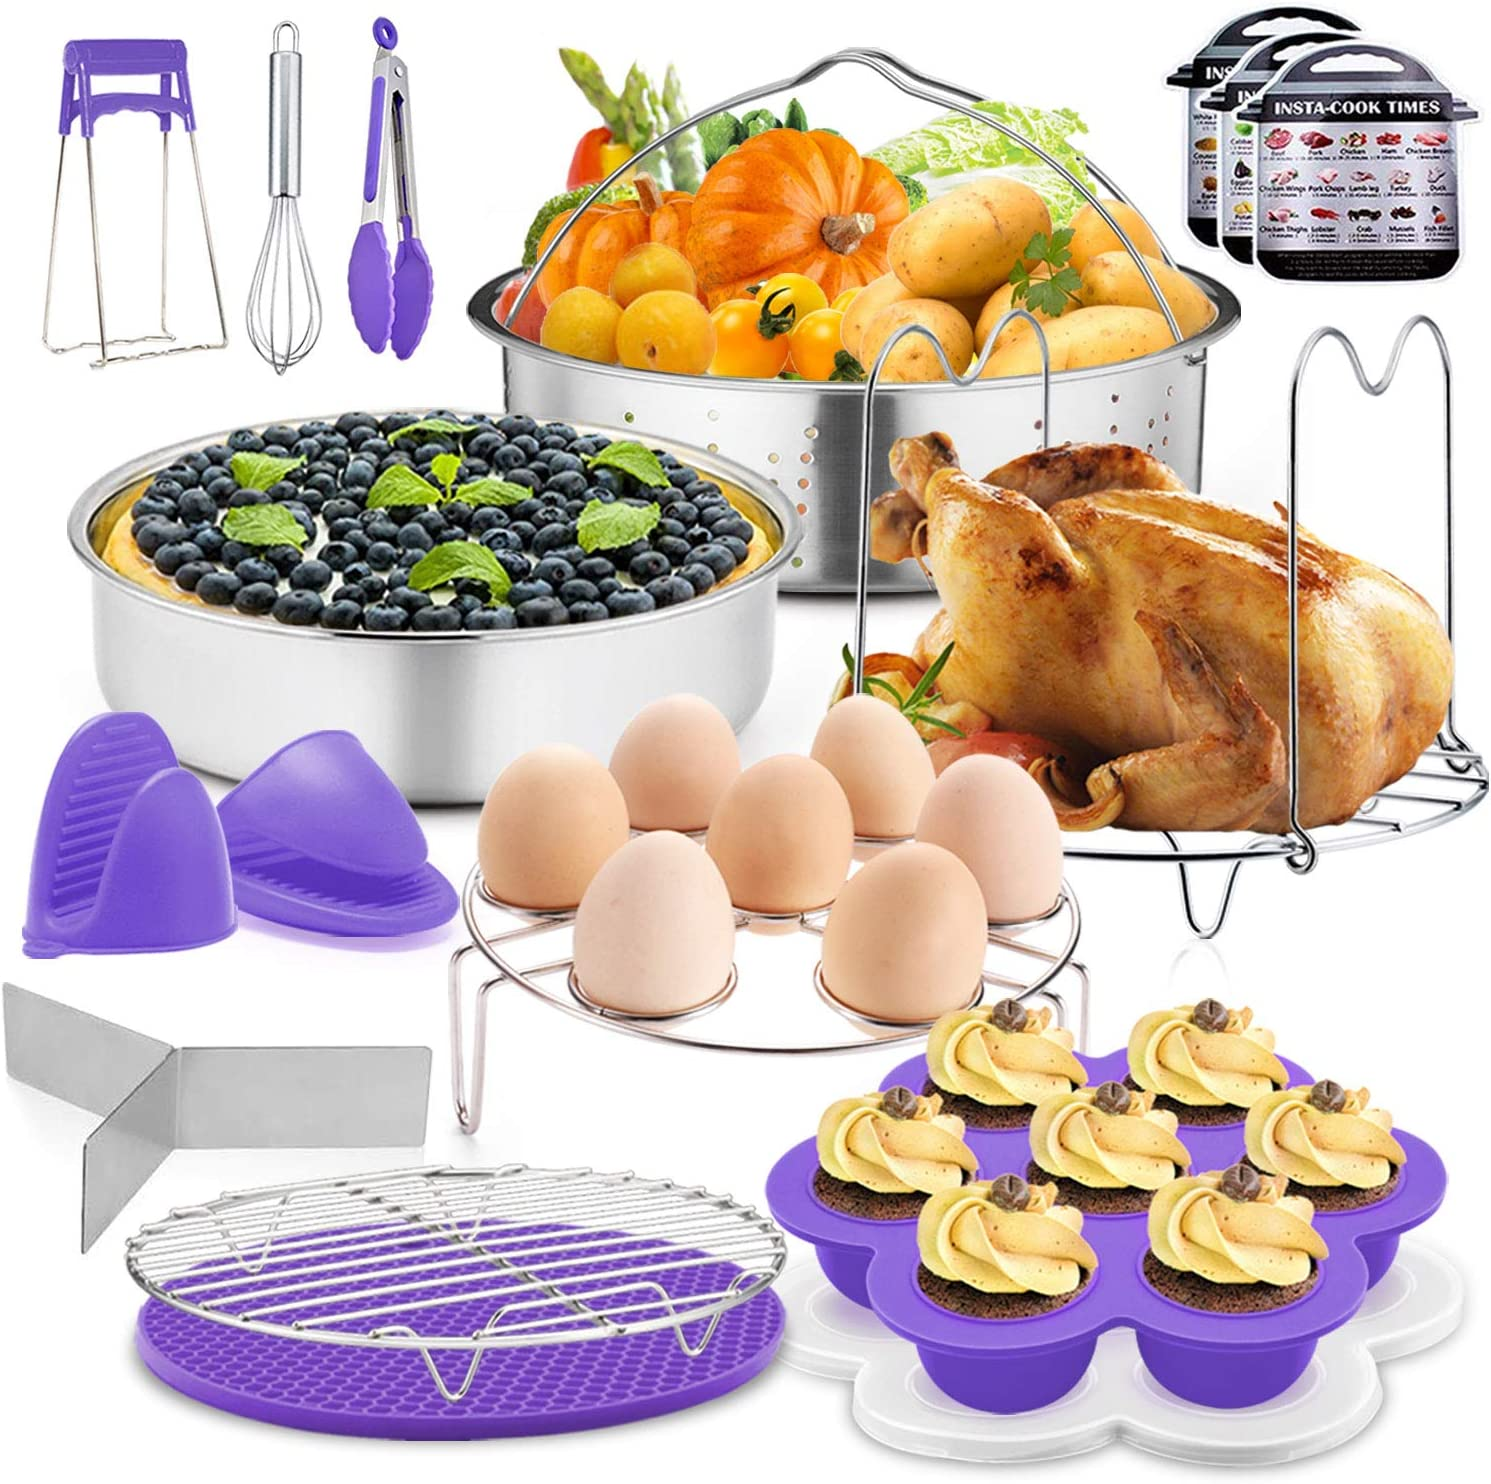 17Pcs Instant Pressure Cooker Pot Accessories Set, P&P CHEF Purple Steamer Accessory Kit, Fit 6/8 Qt Pot - Steamer Basket, Cake Pan, Egg Bites Mold, Egg Steamer Rack, Dish Clip and More Kitchen Tools